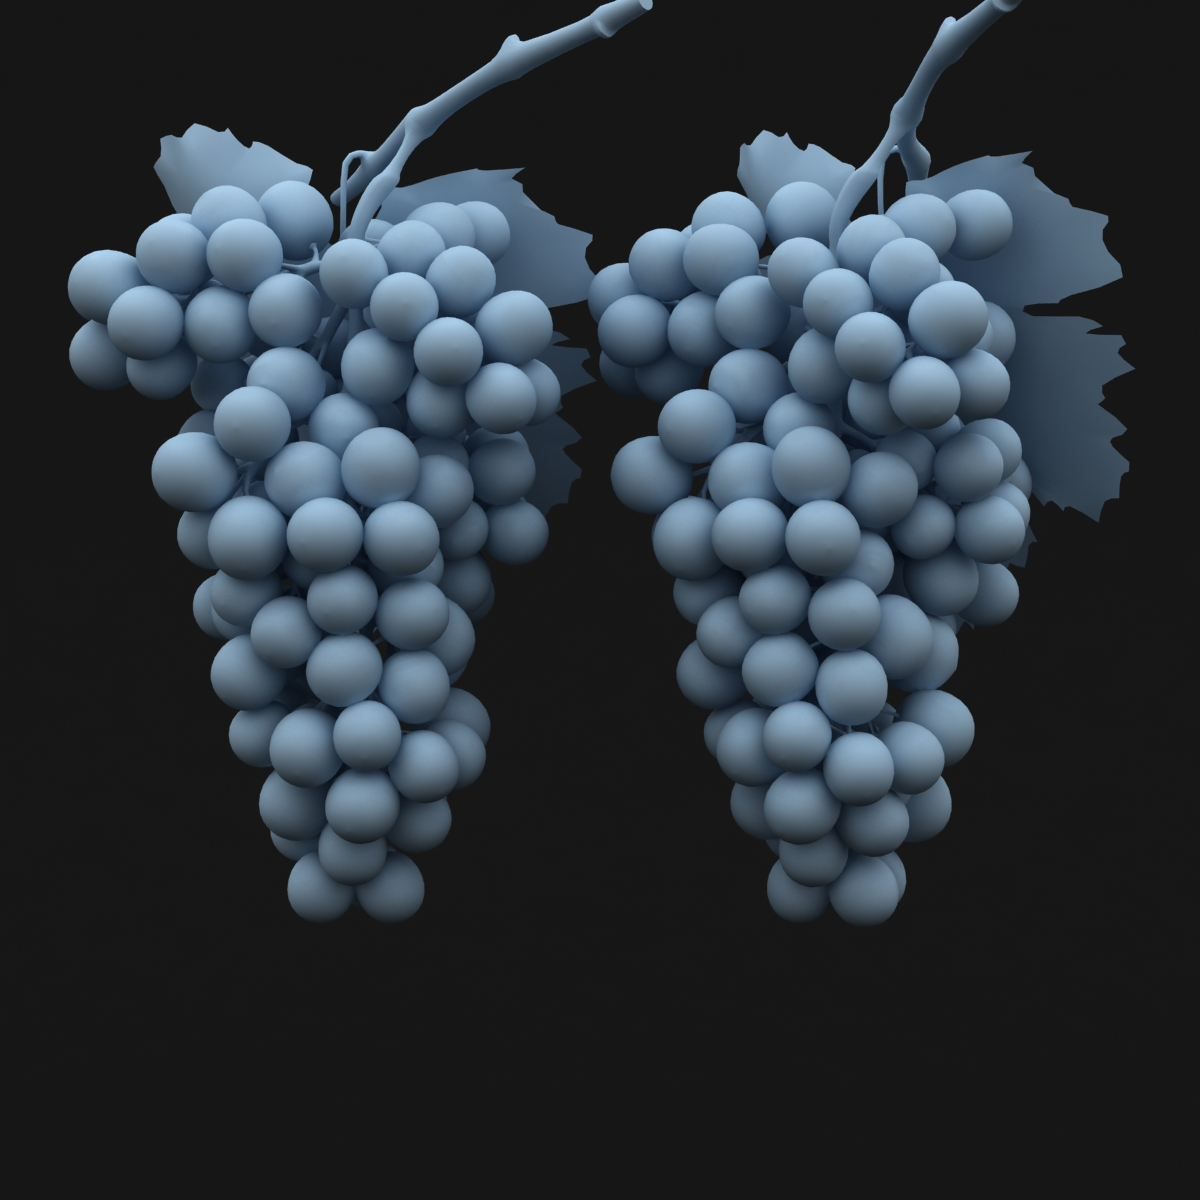 grapes black and blue 3d model 3ds max fbx c4d obj 204273